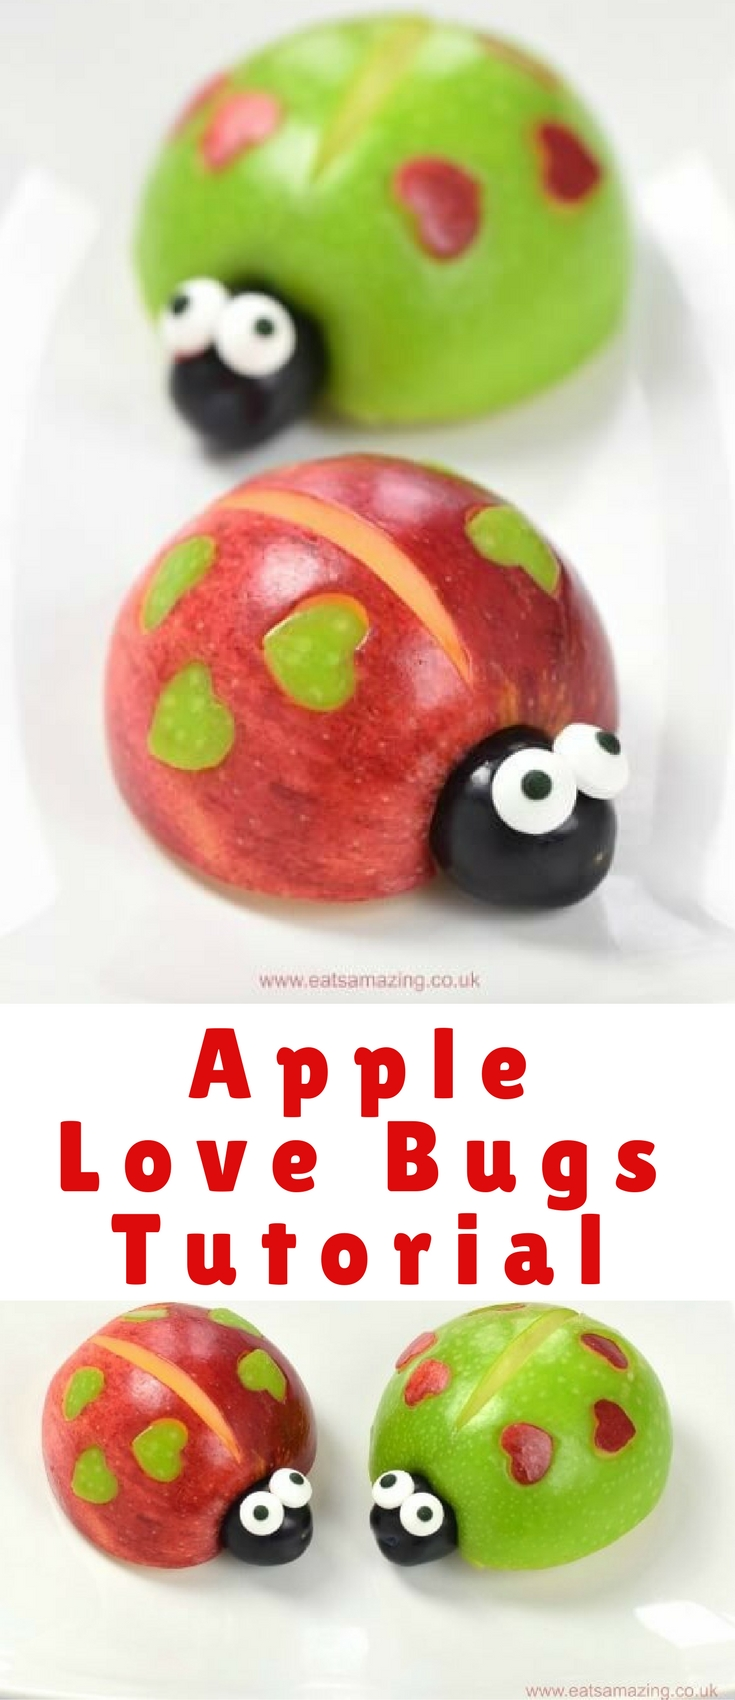 As Valentines Day fast approaches I've got another Valentines fun food idea to share with you – cute and easy apple love bugs!